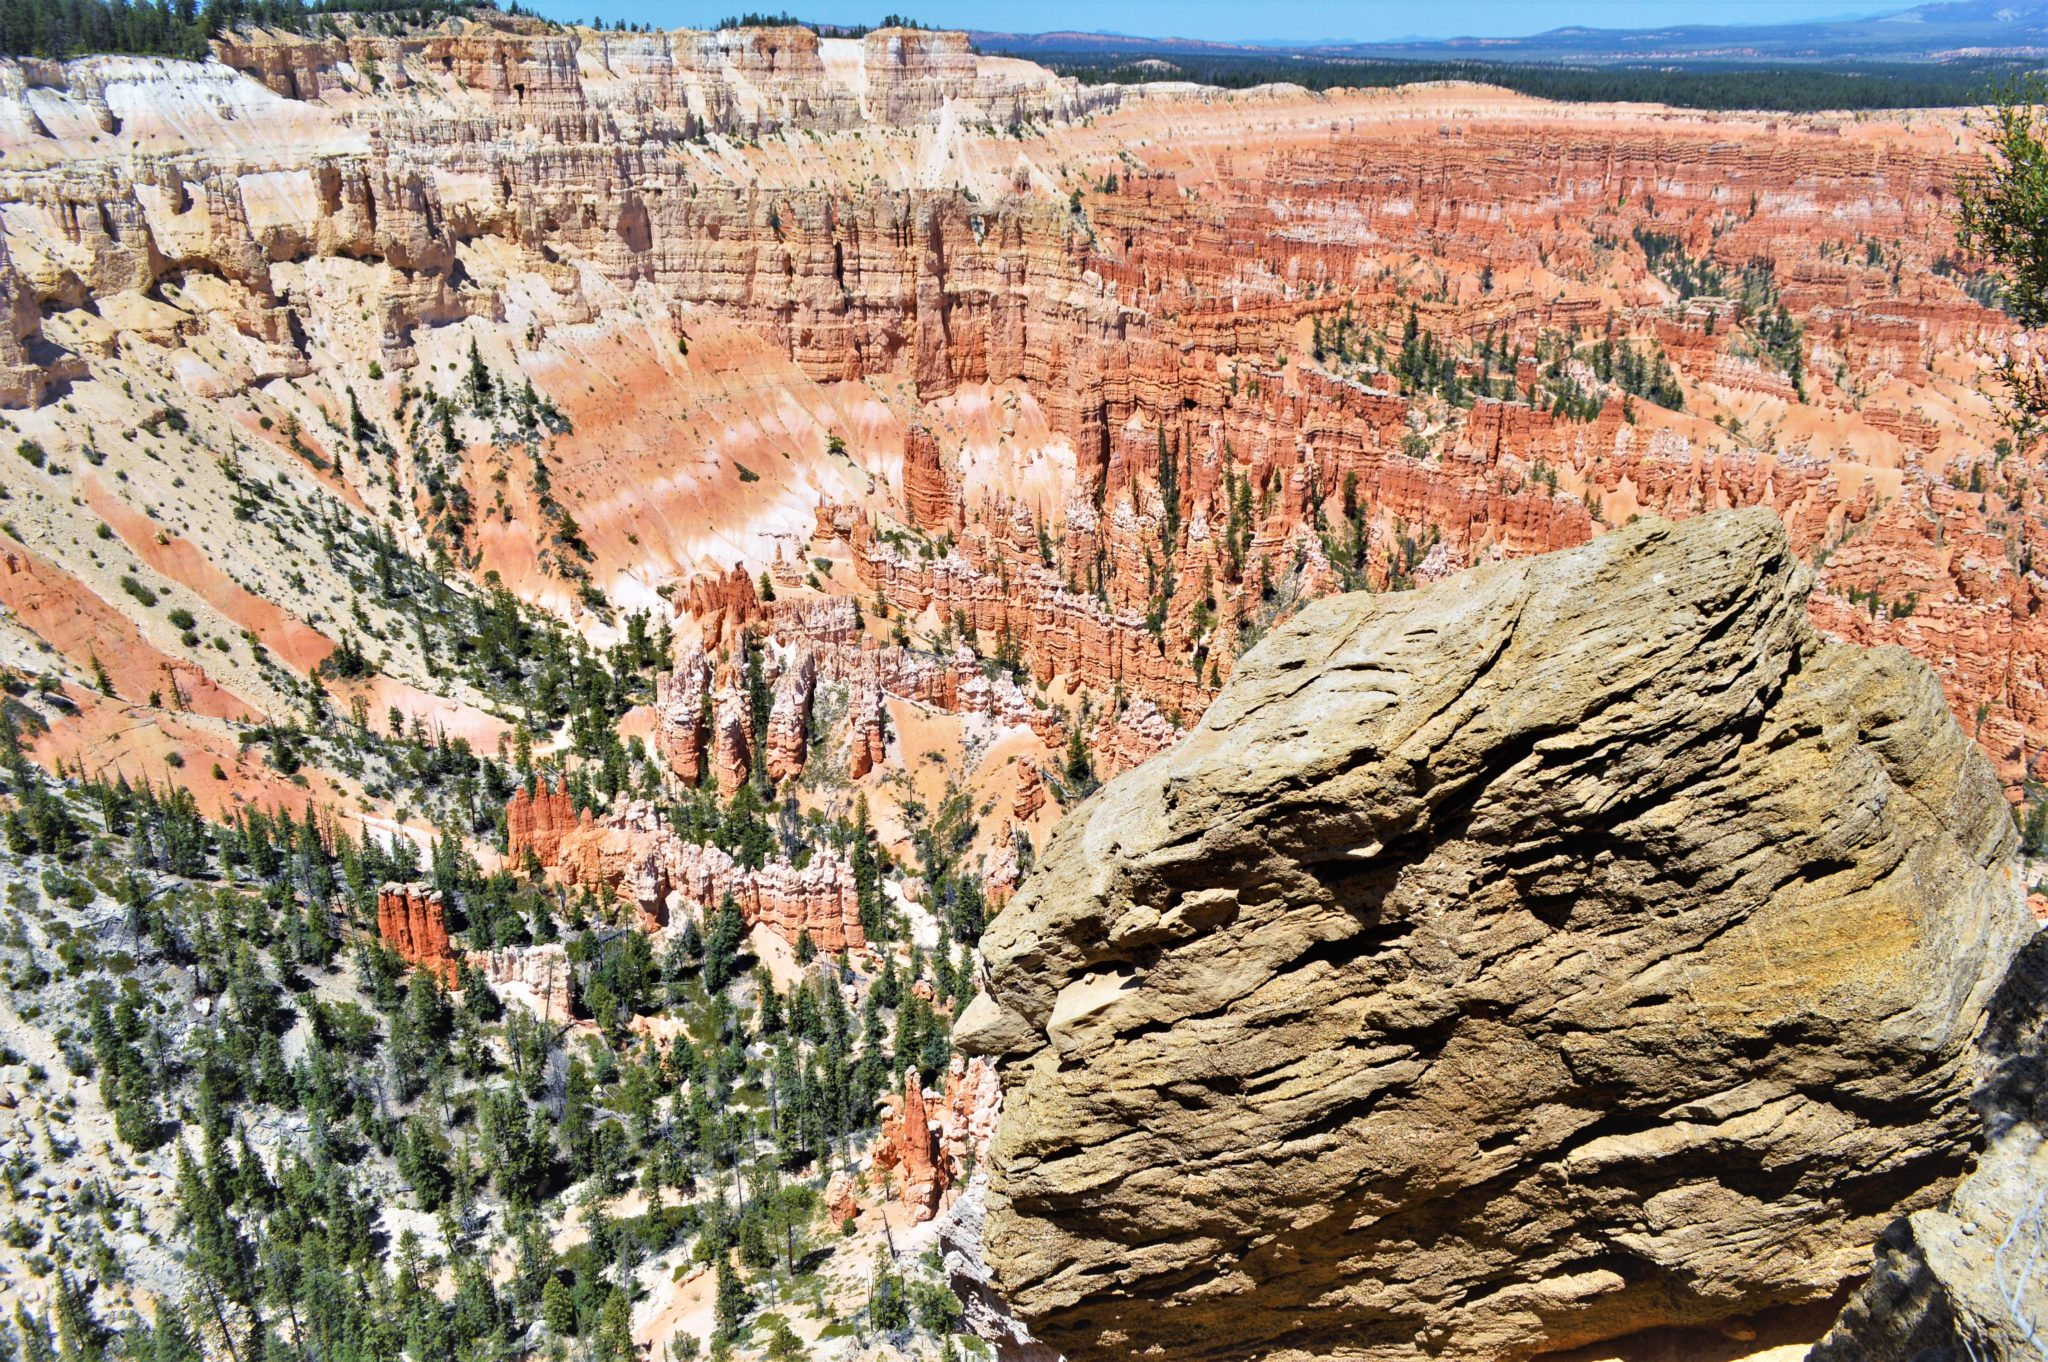 Rocks at bryce canyon's bryce point, usa